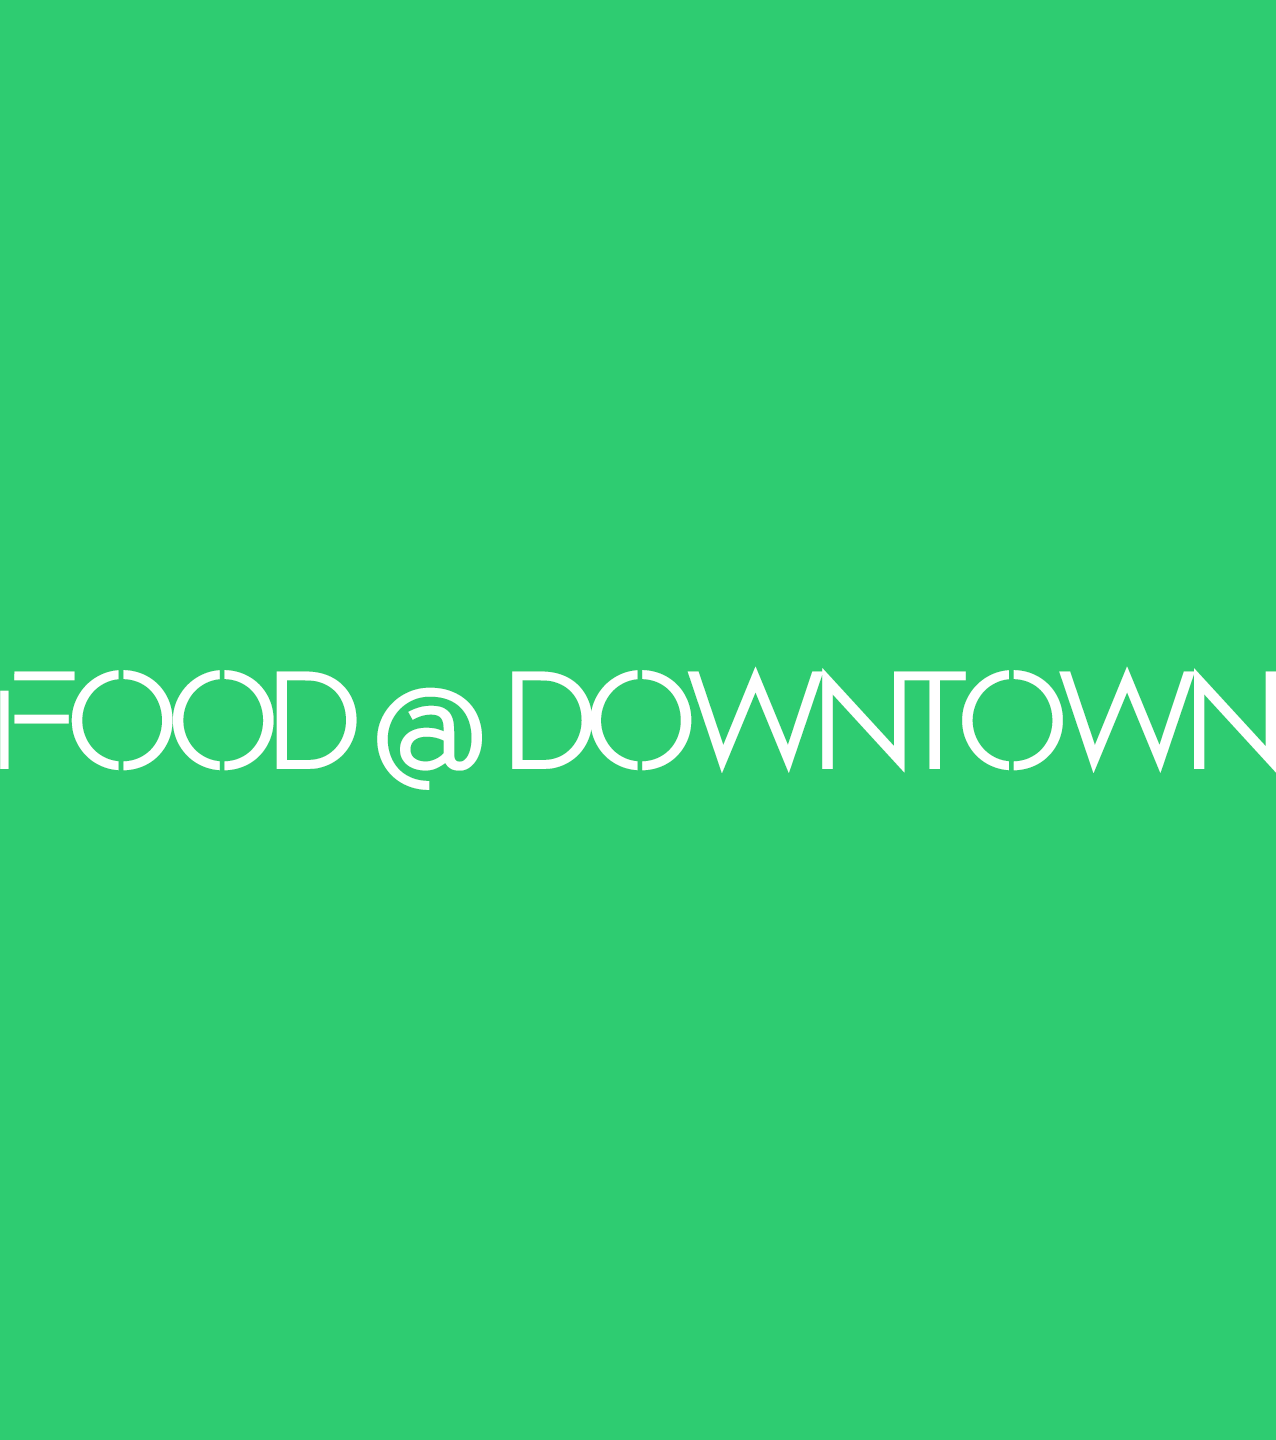 Food @Downtown company logo